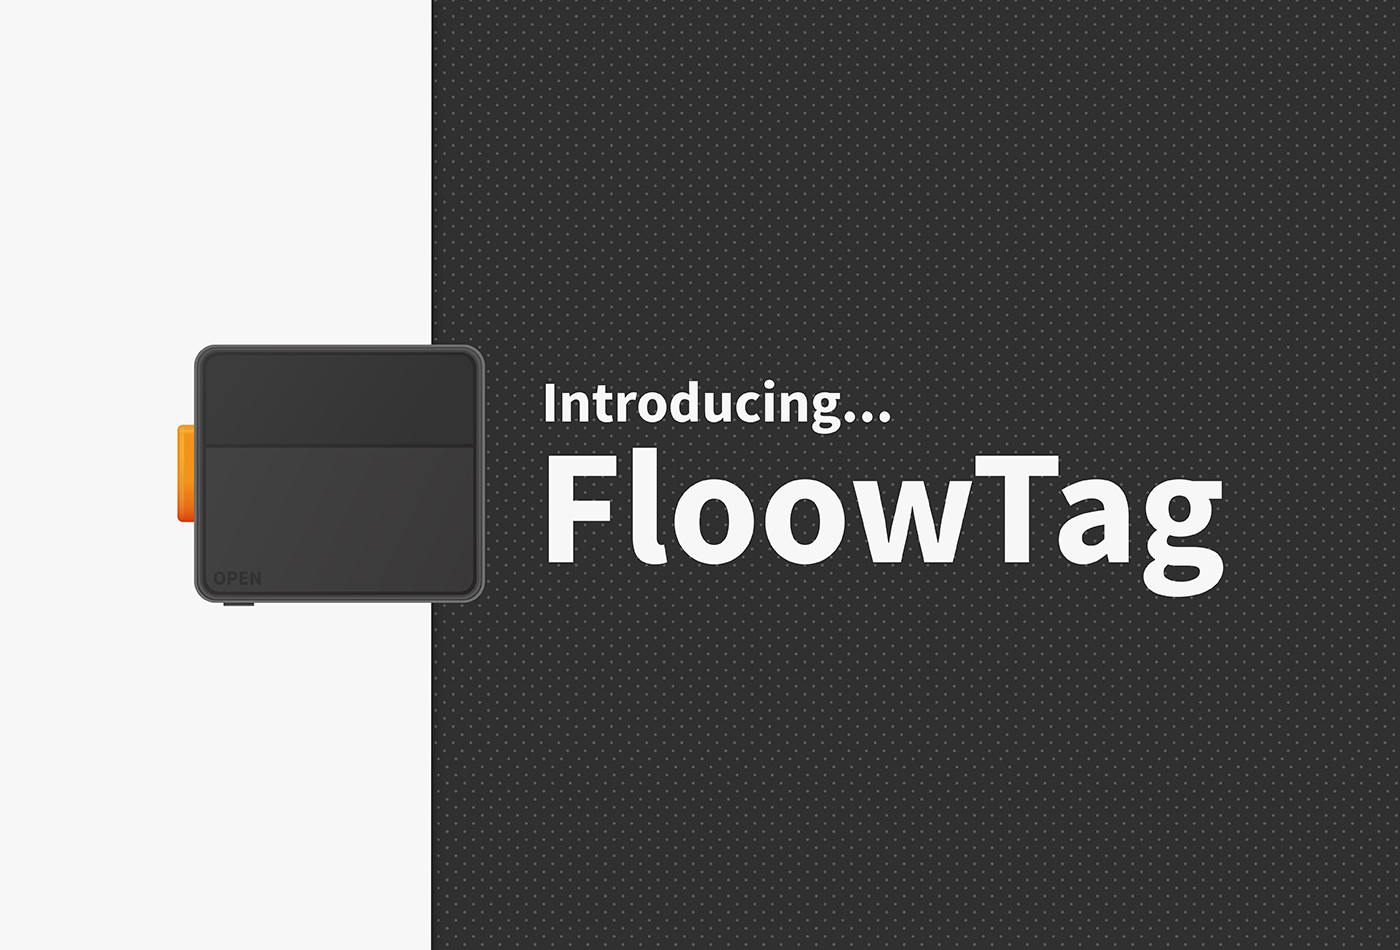 Introducing… FloowTag